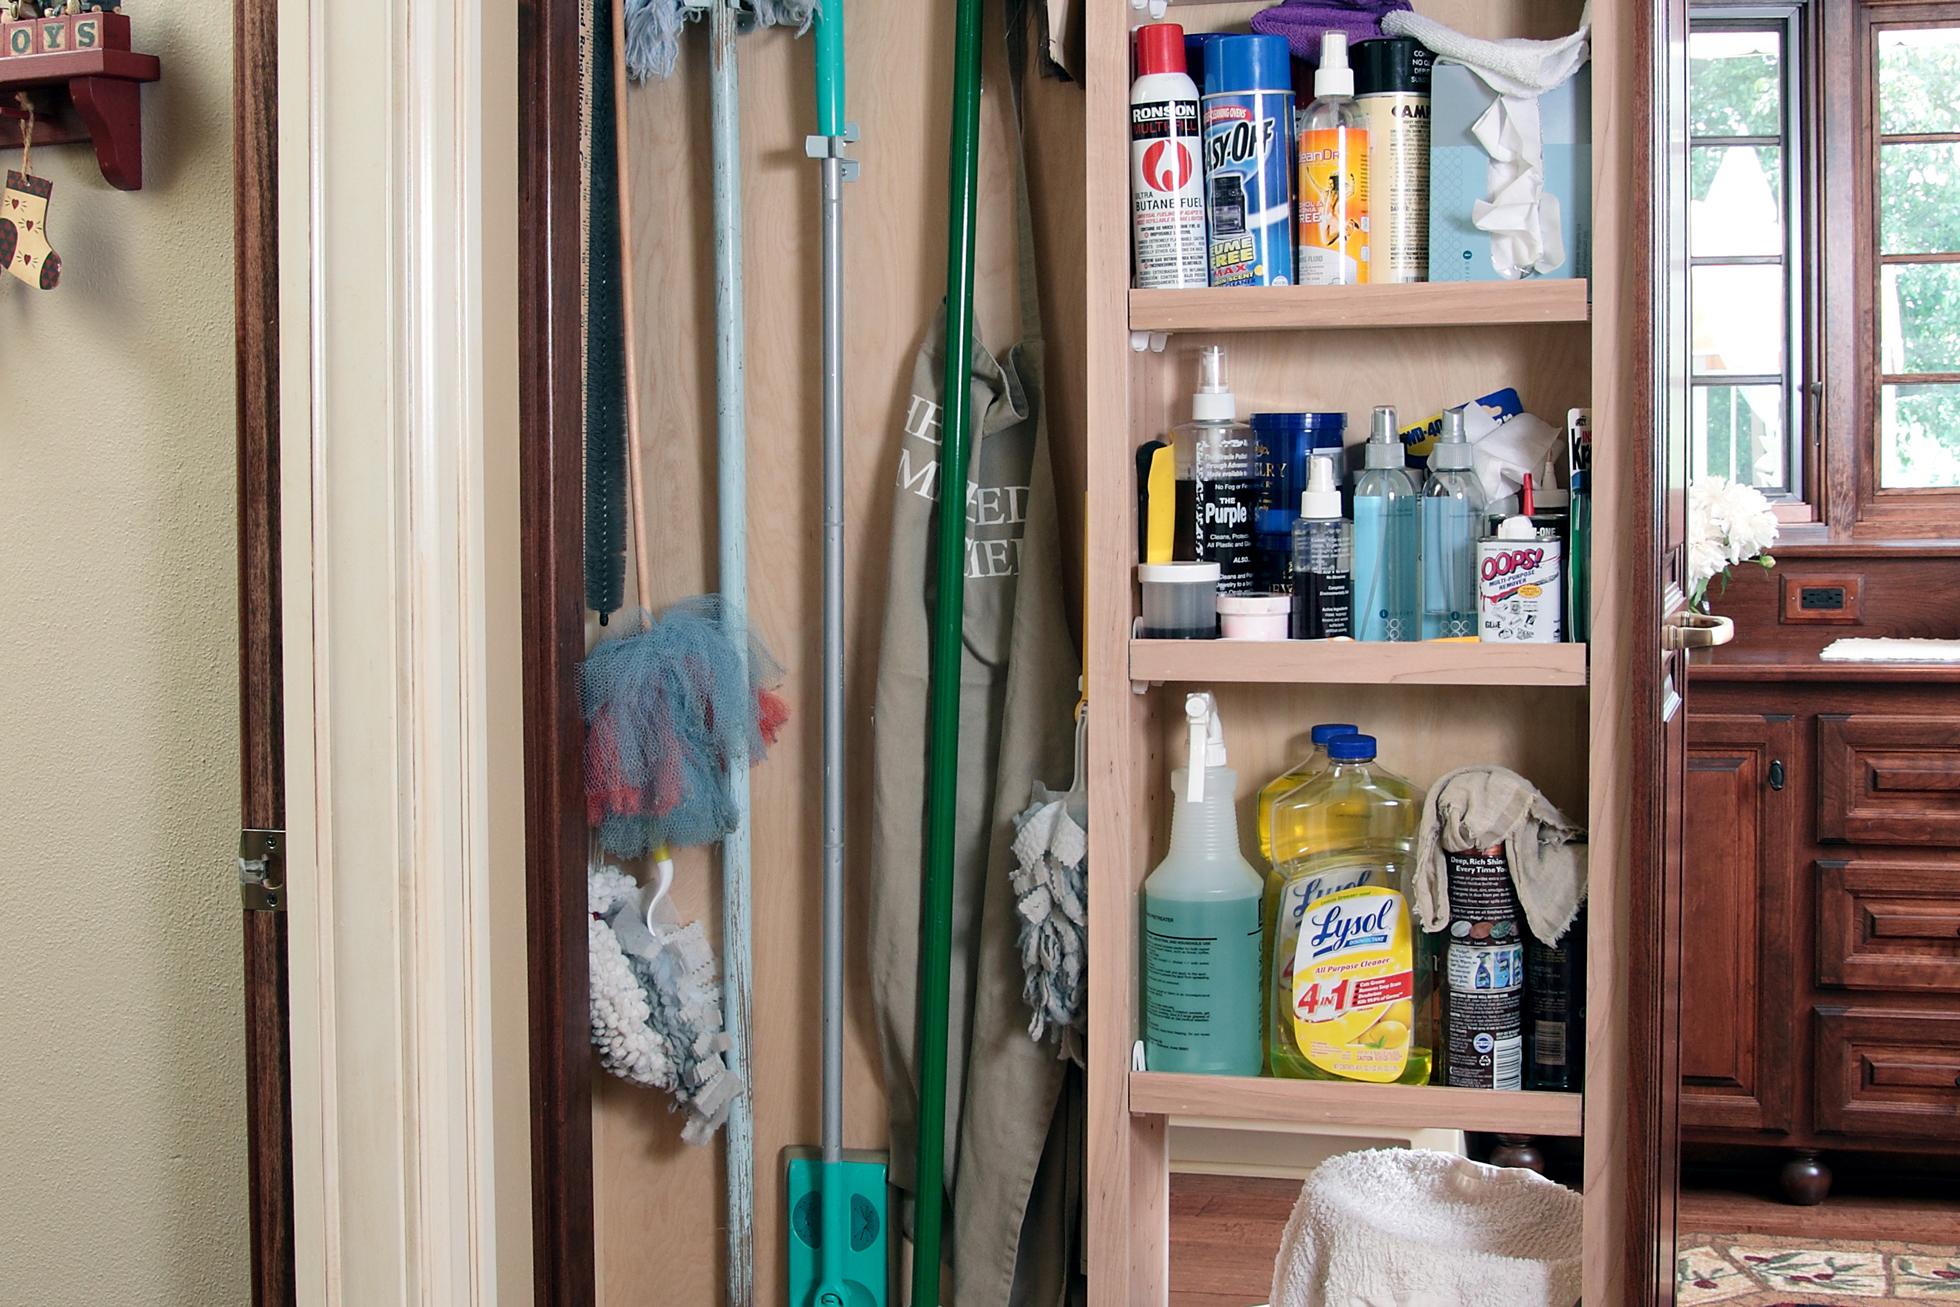 A pull-out cabinet filled with cleaning supplies in kitchen